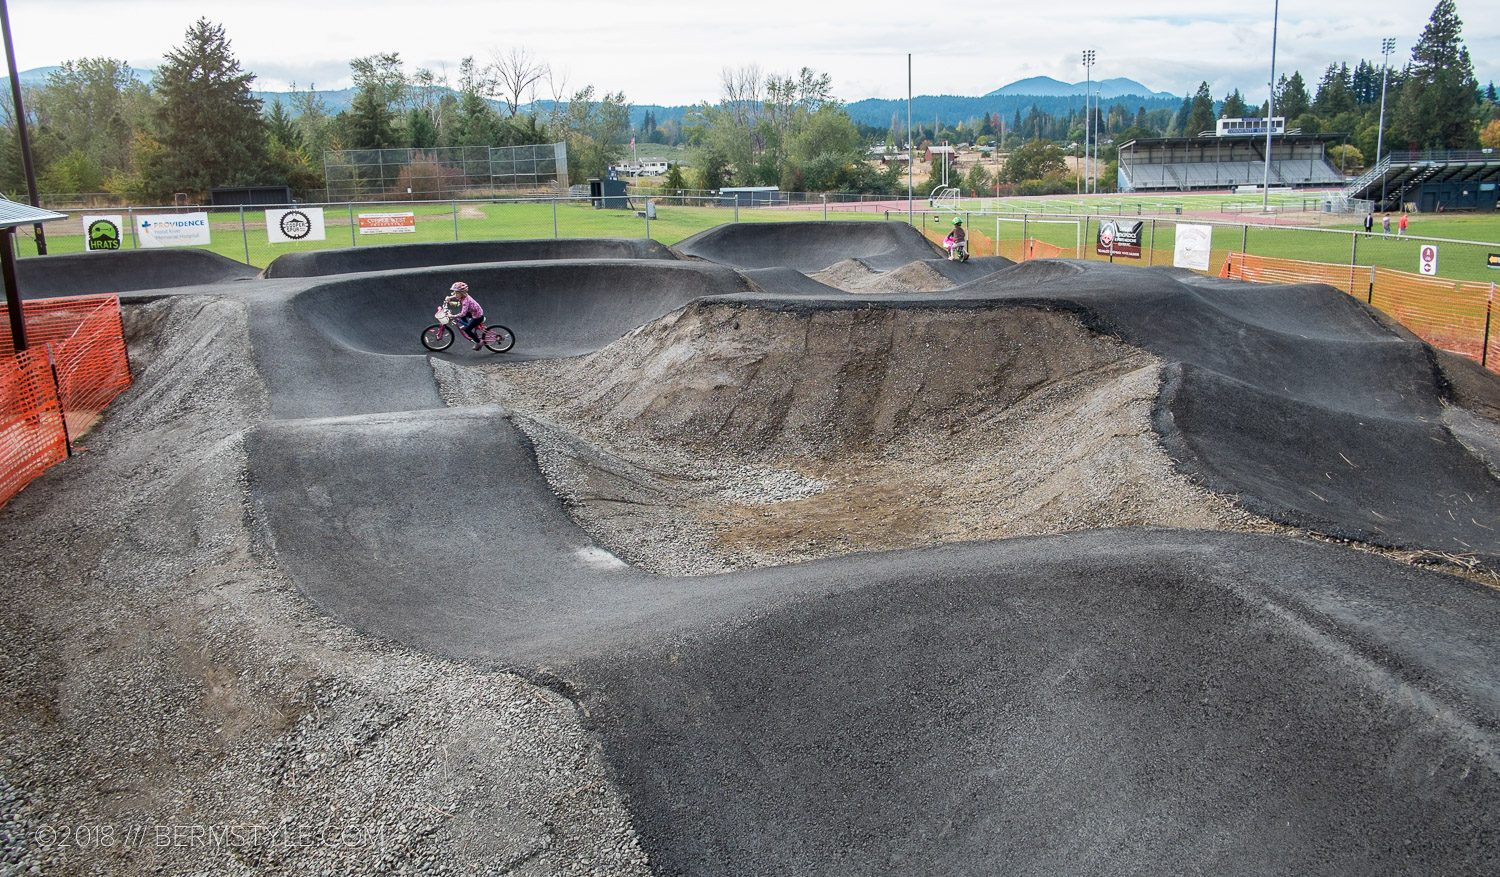 First Look: the New Paved Pump Track at the Golden Eagle Park Pump Track in Hood River